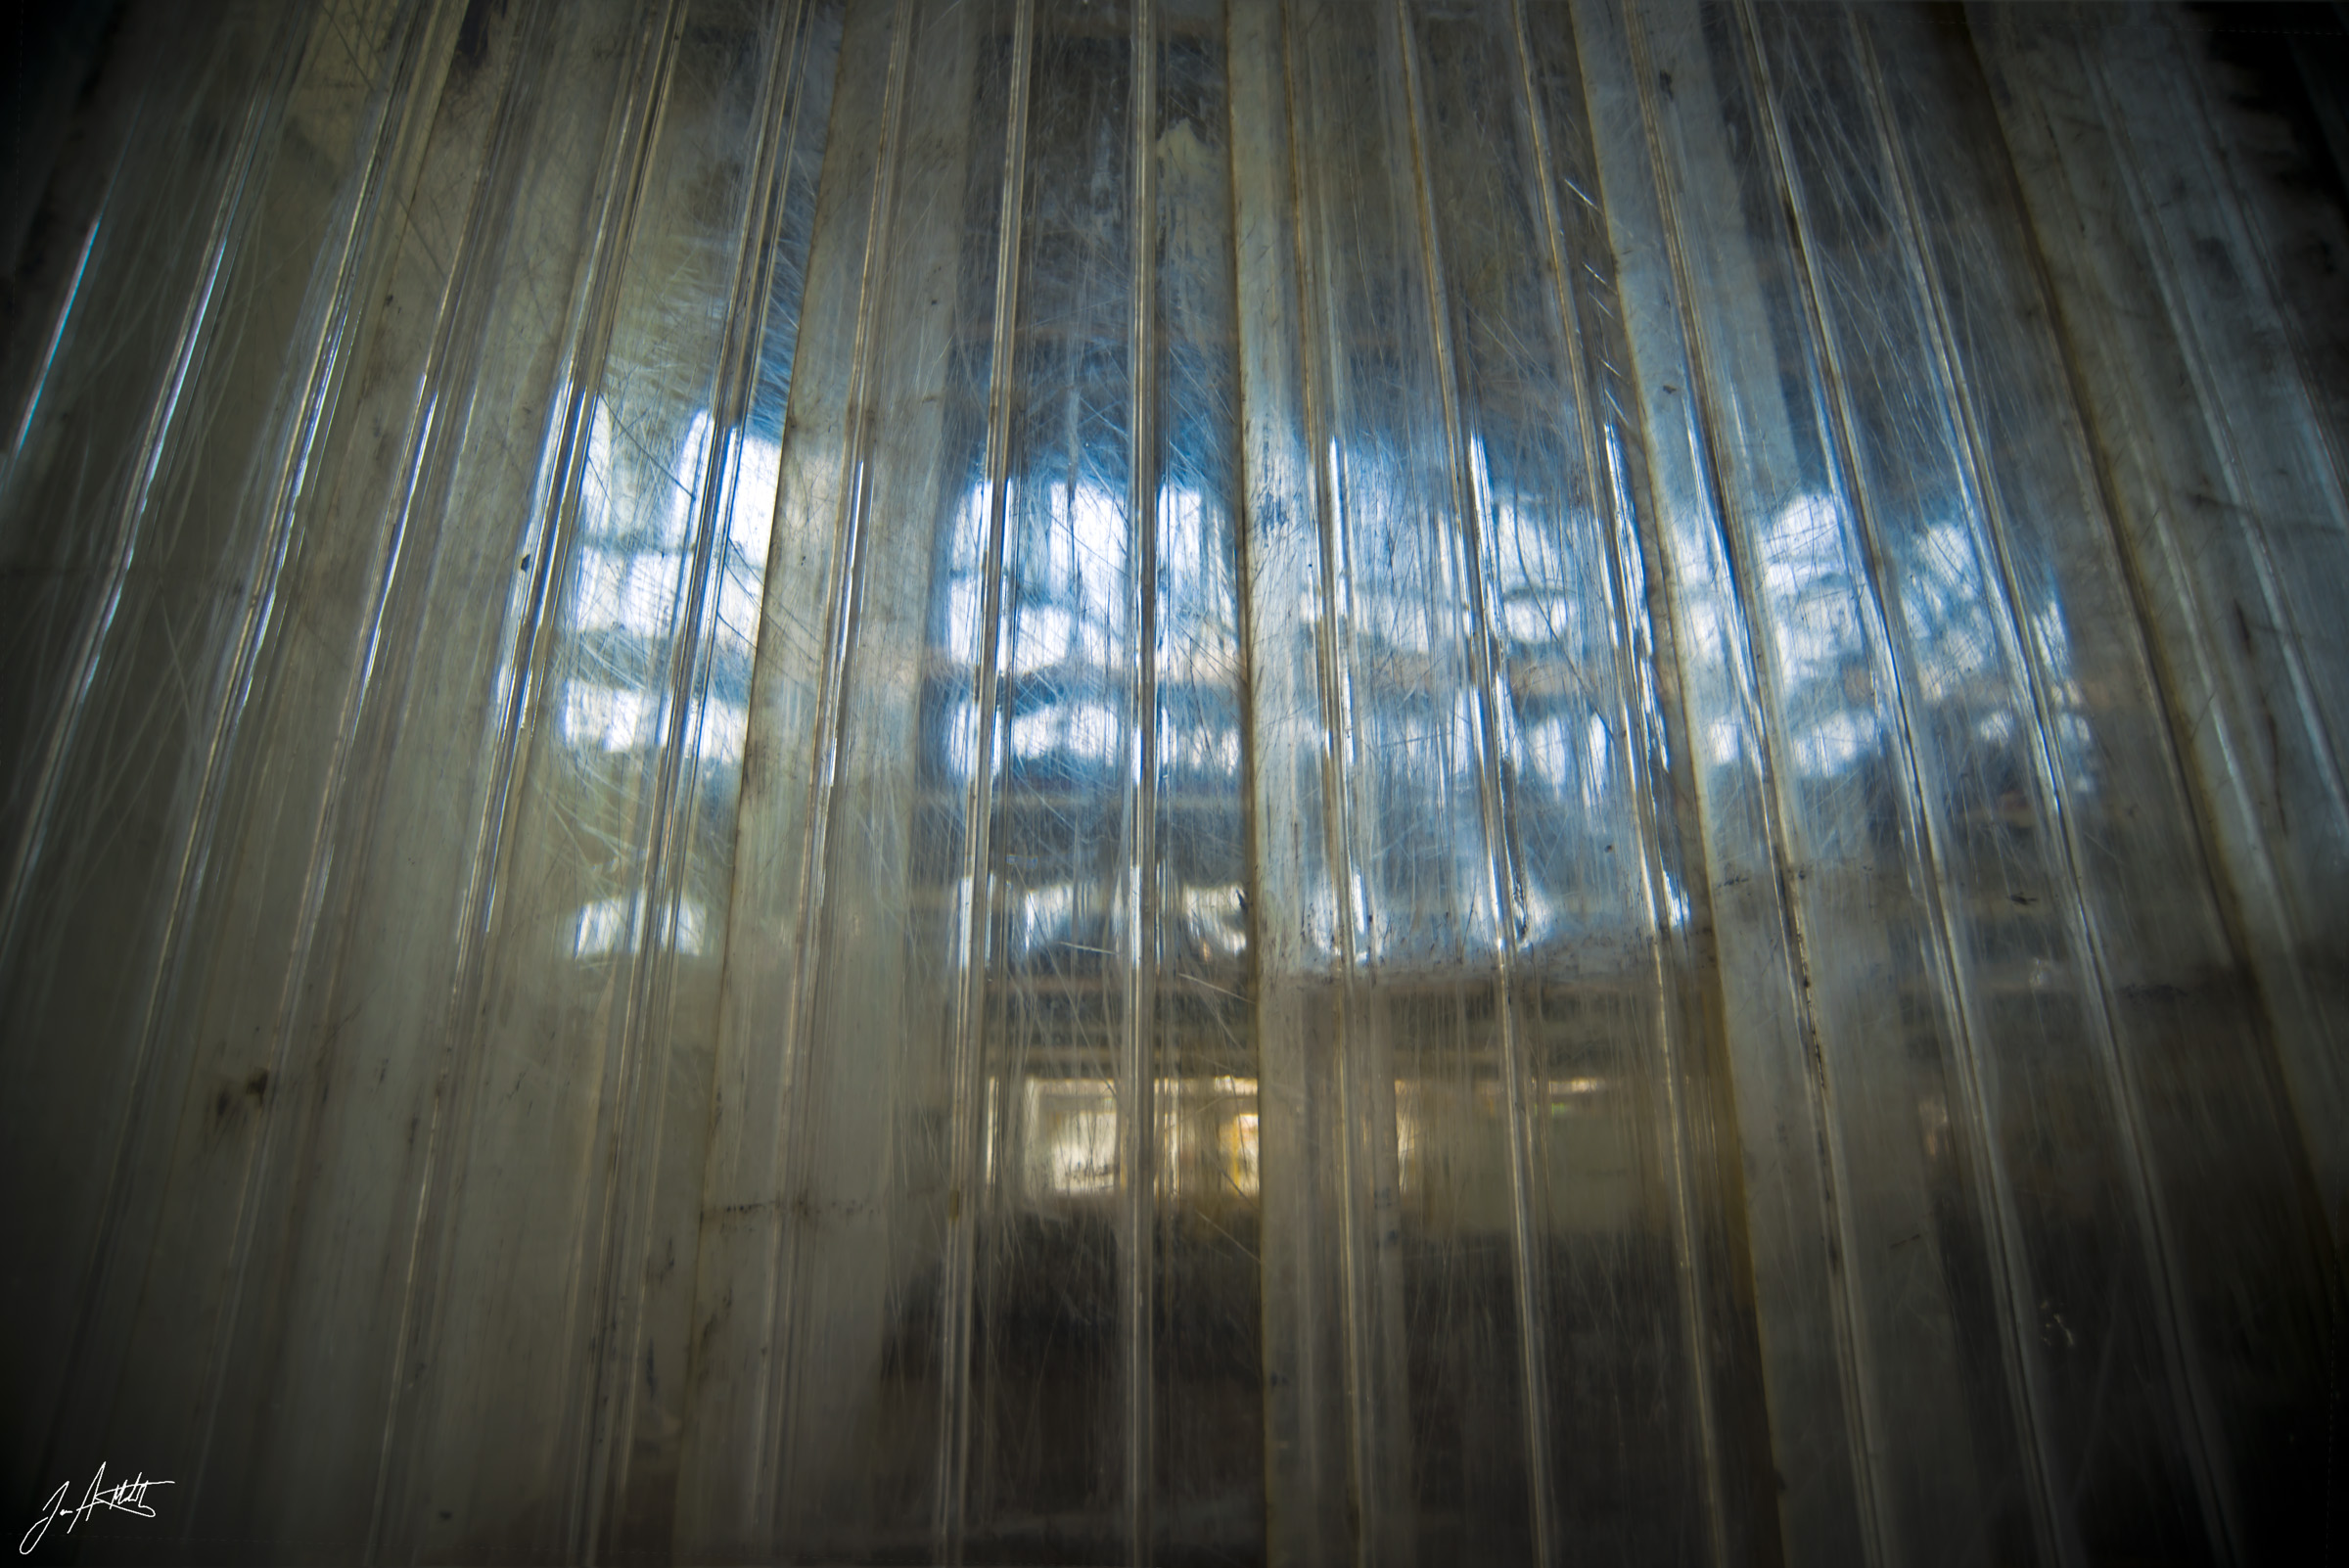 DAY200_Plastic Curtain_JUL 19